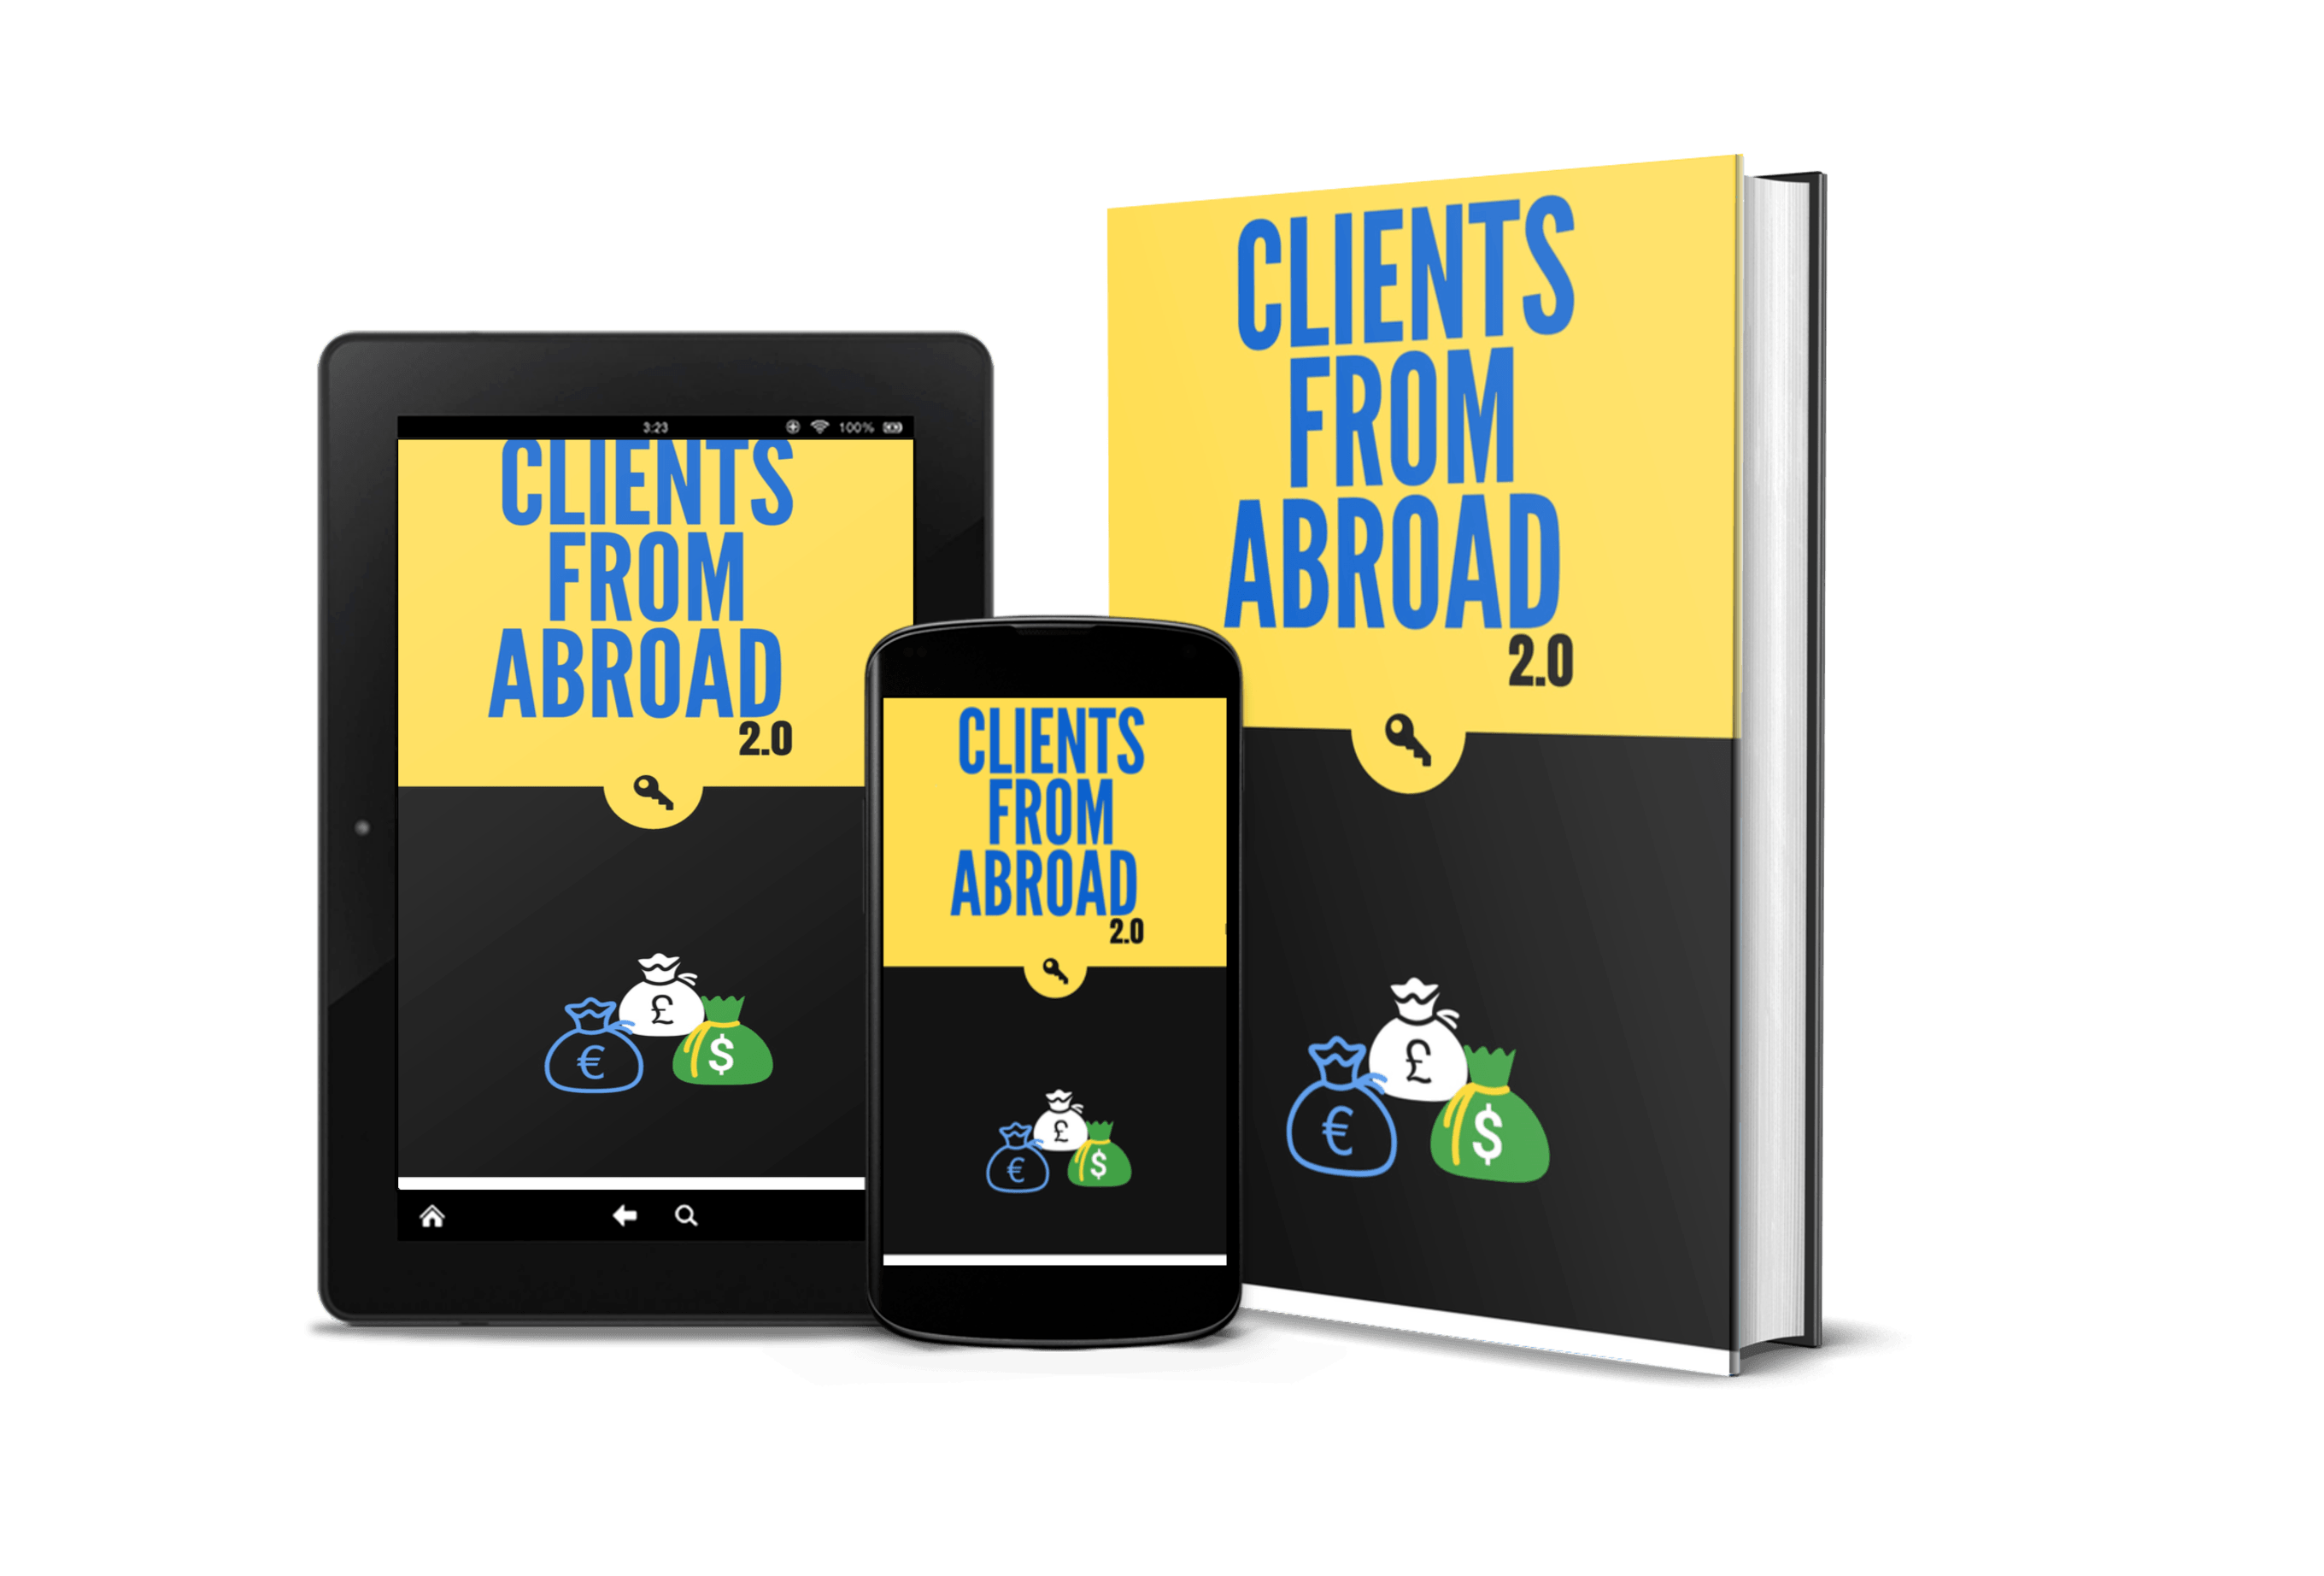 CLIENTS FROM ABROAD BY JOHNSON EMMANUEL